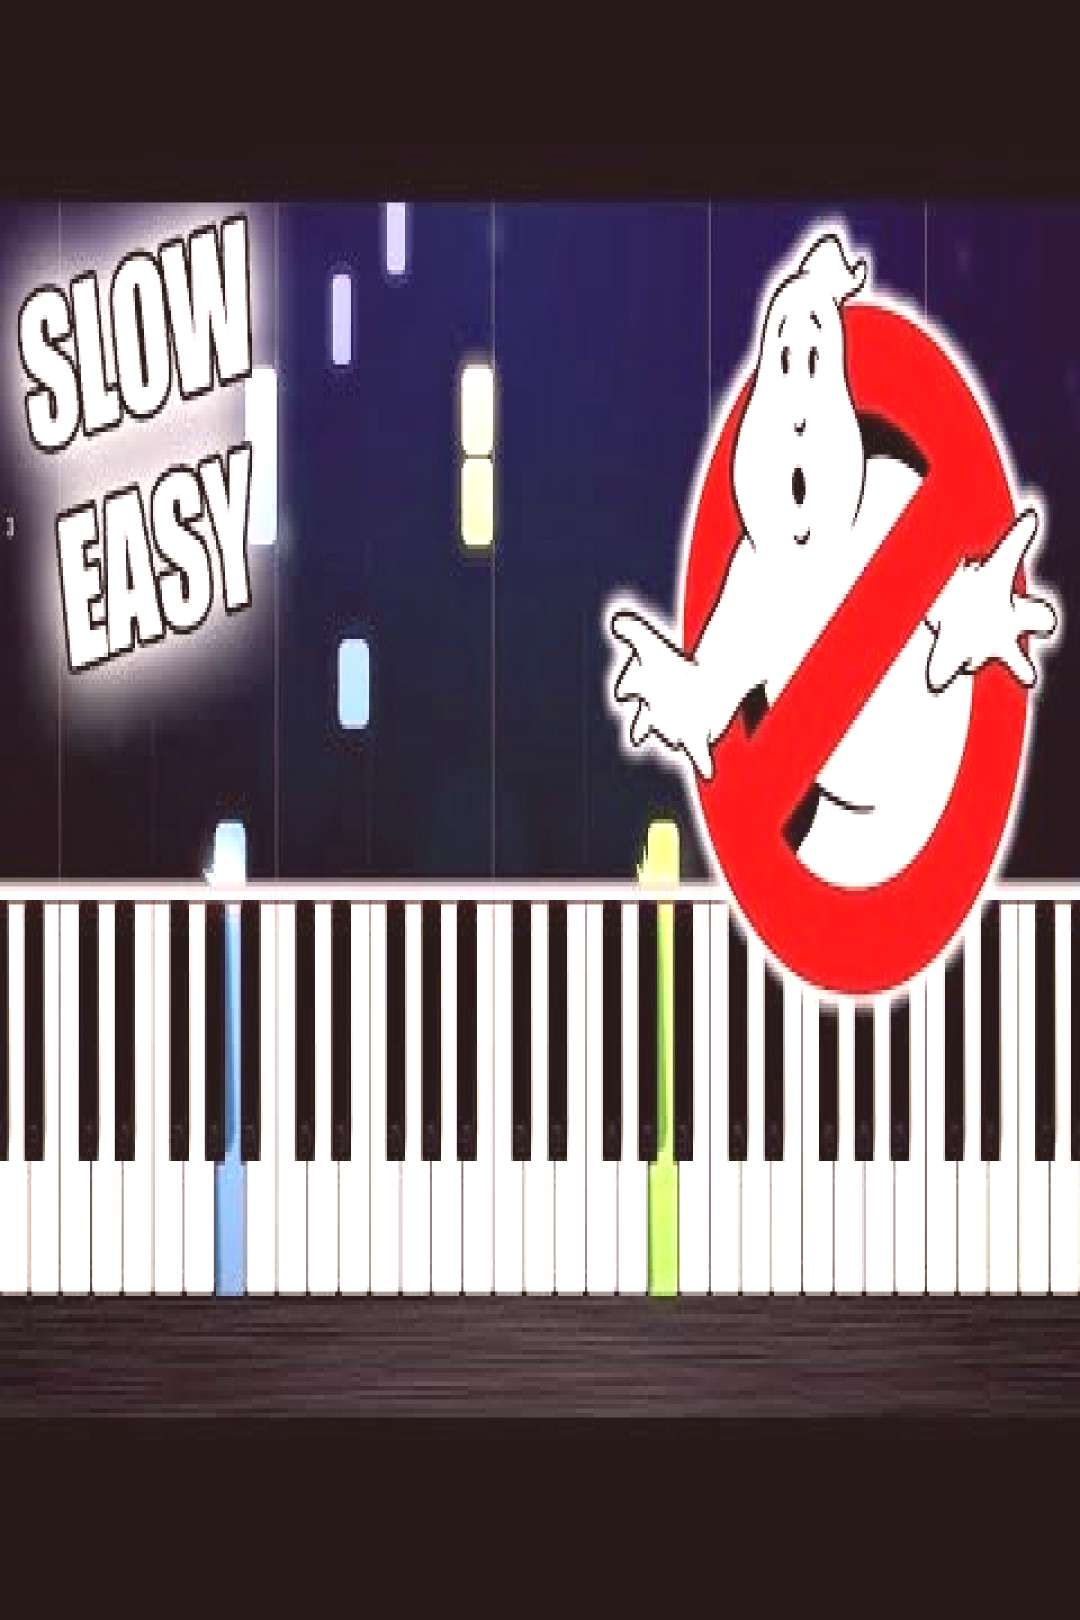 GhostBusters Theme Song - SLOW EASY Piano Tutorial by PlutaX